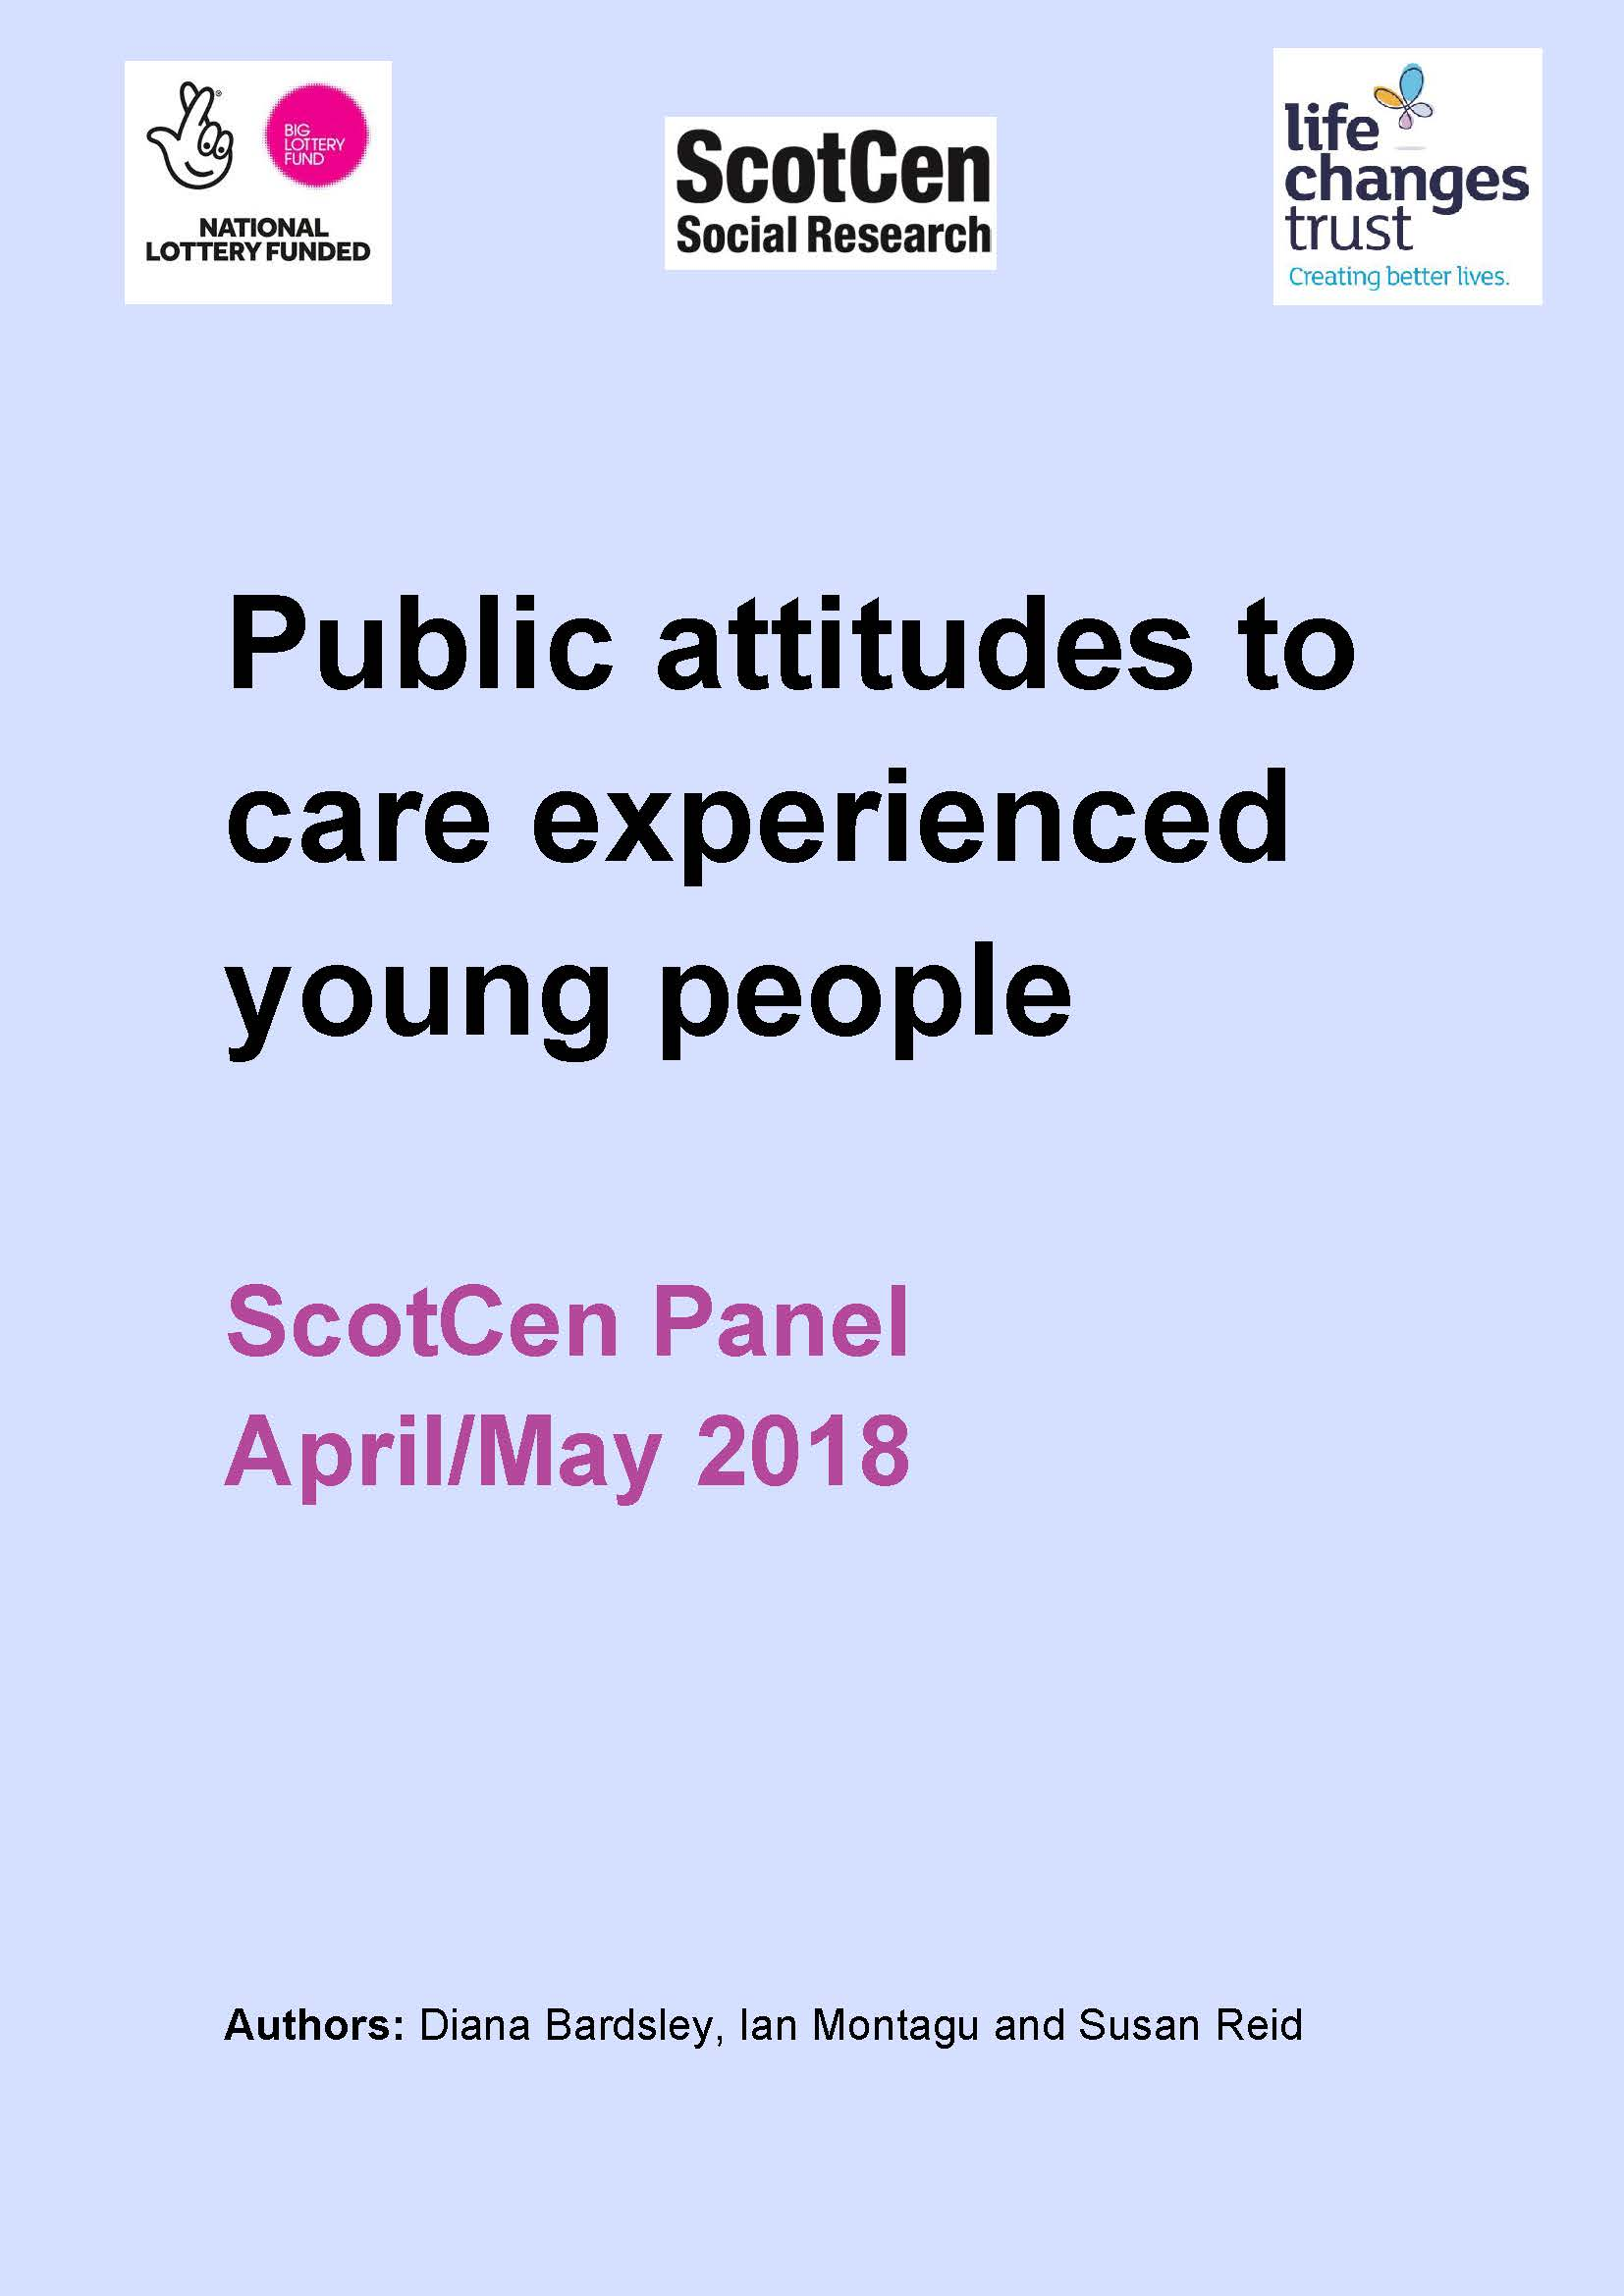 Public attitudes to care experienced young people